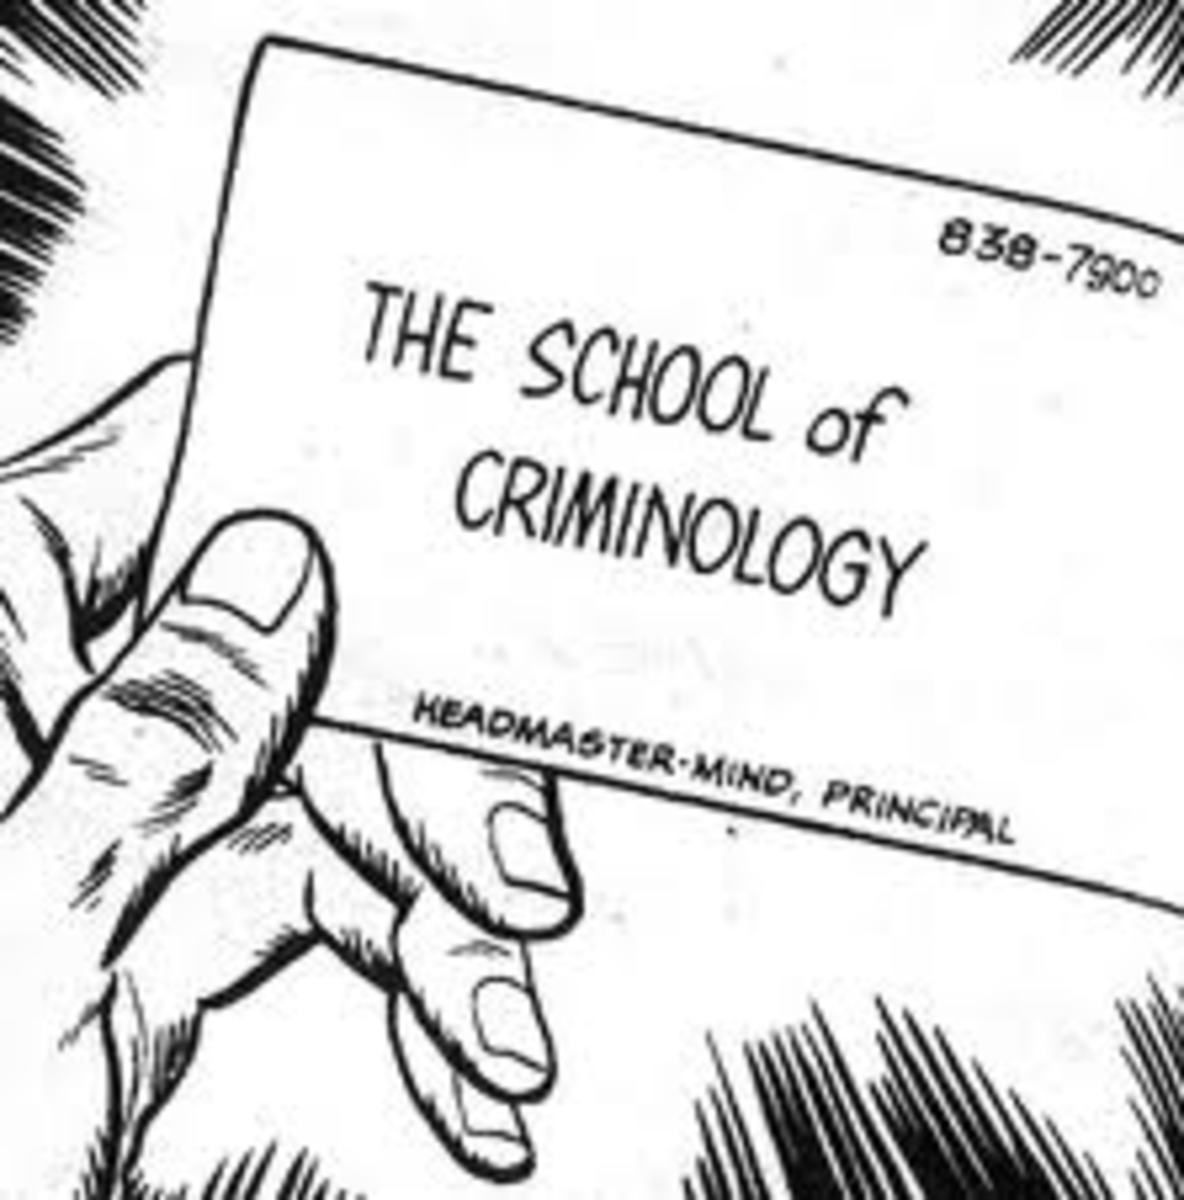 Schools of Criminology